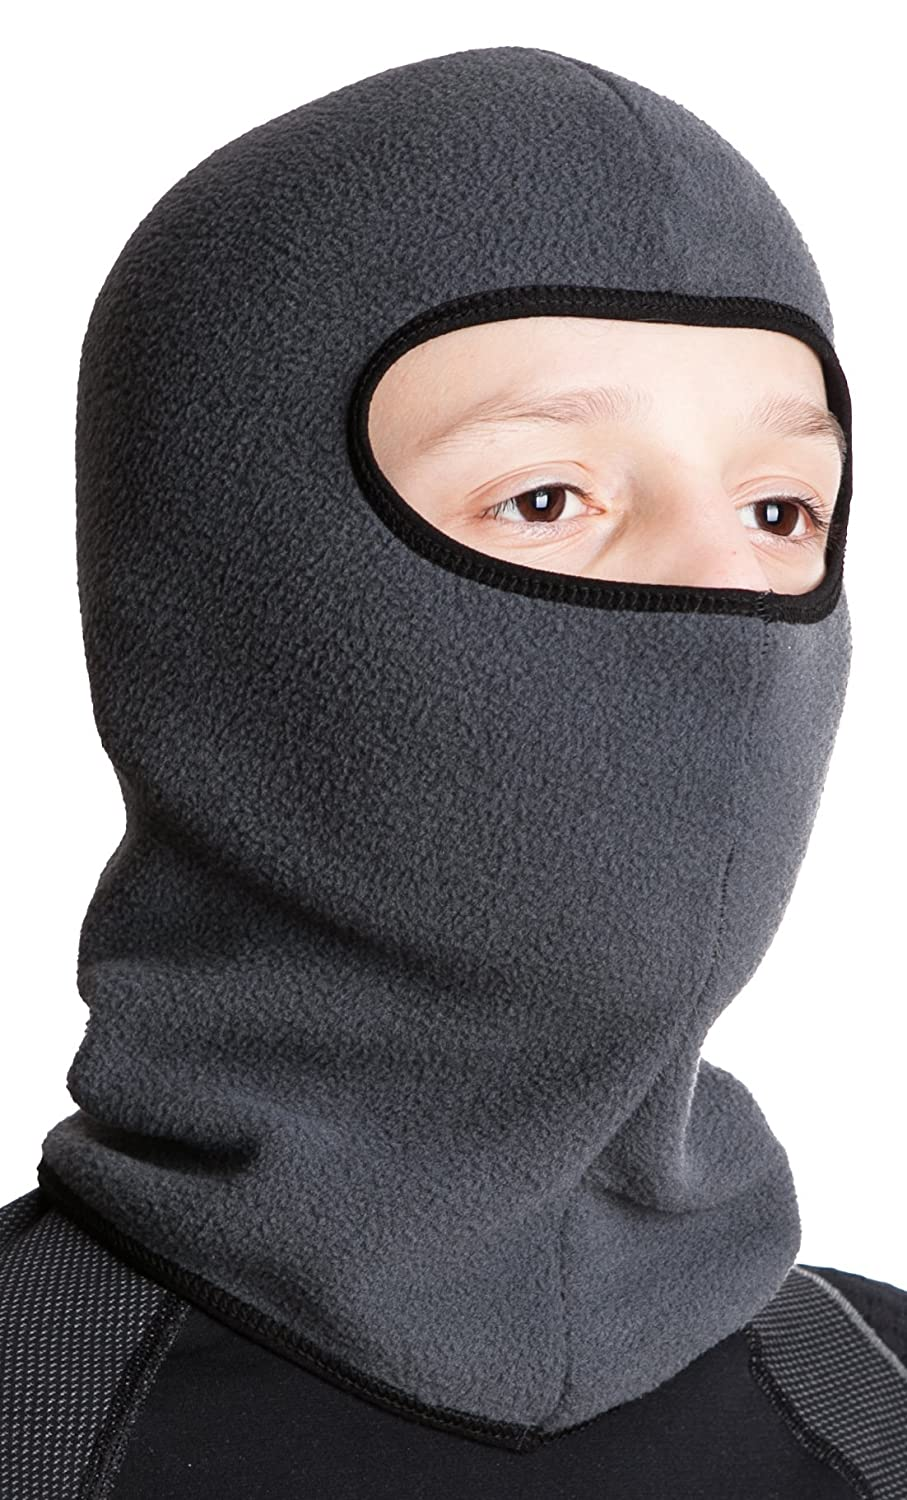 Childrens Fleece Balaclava / Ski mask / Face mask - Diferent Size L (15-18 Years))